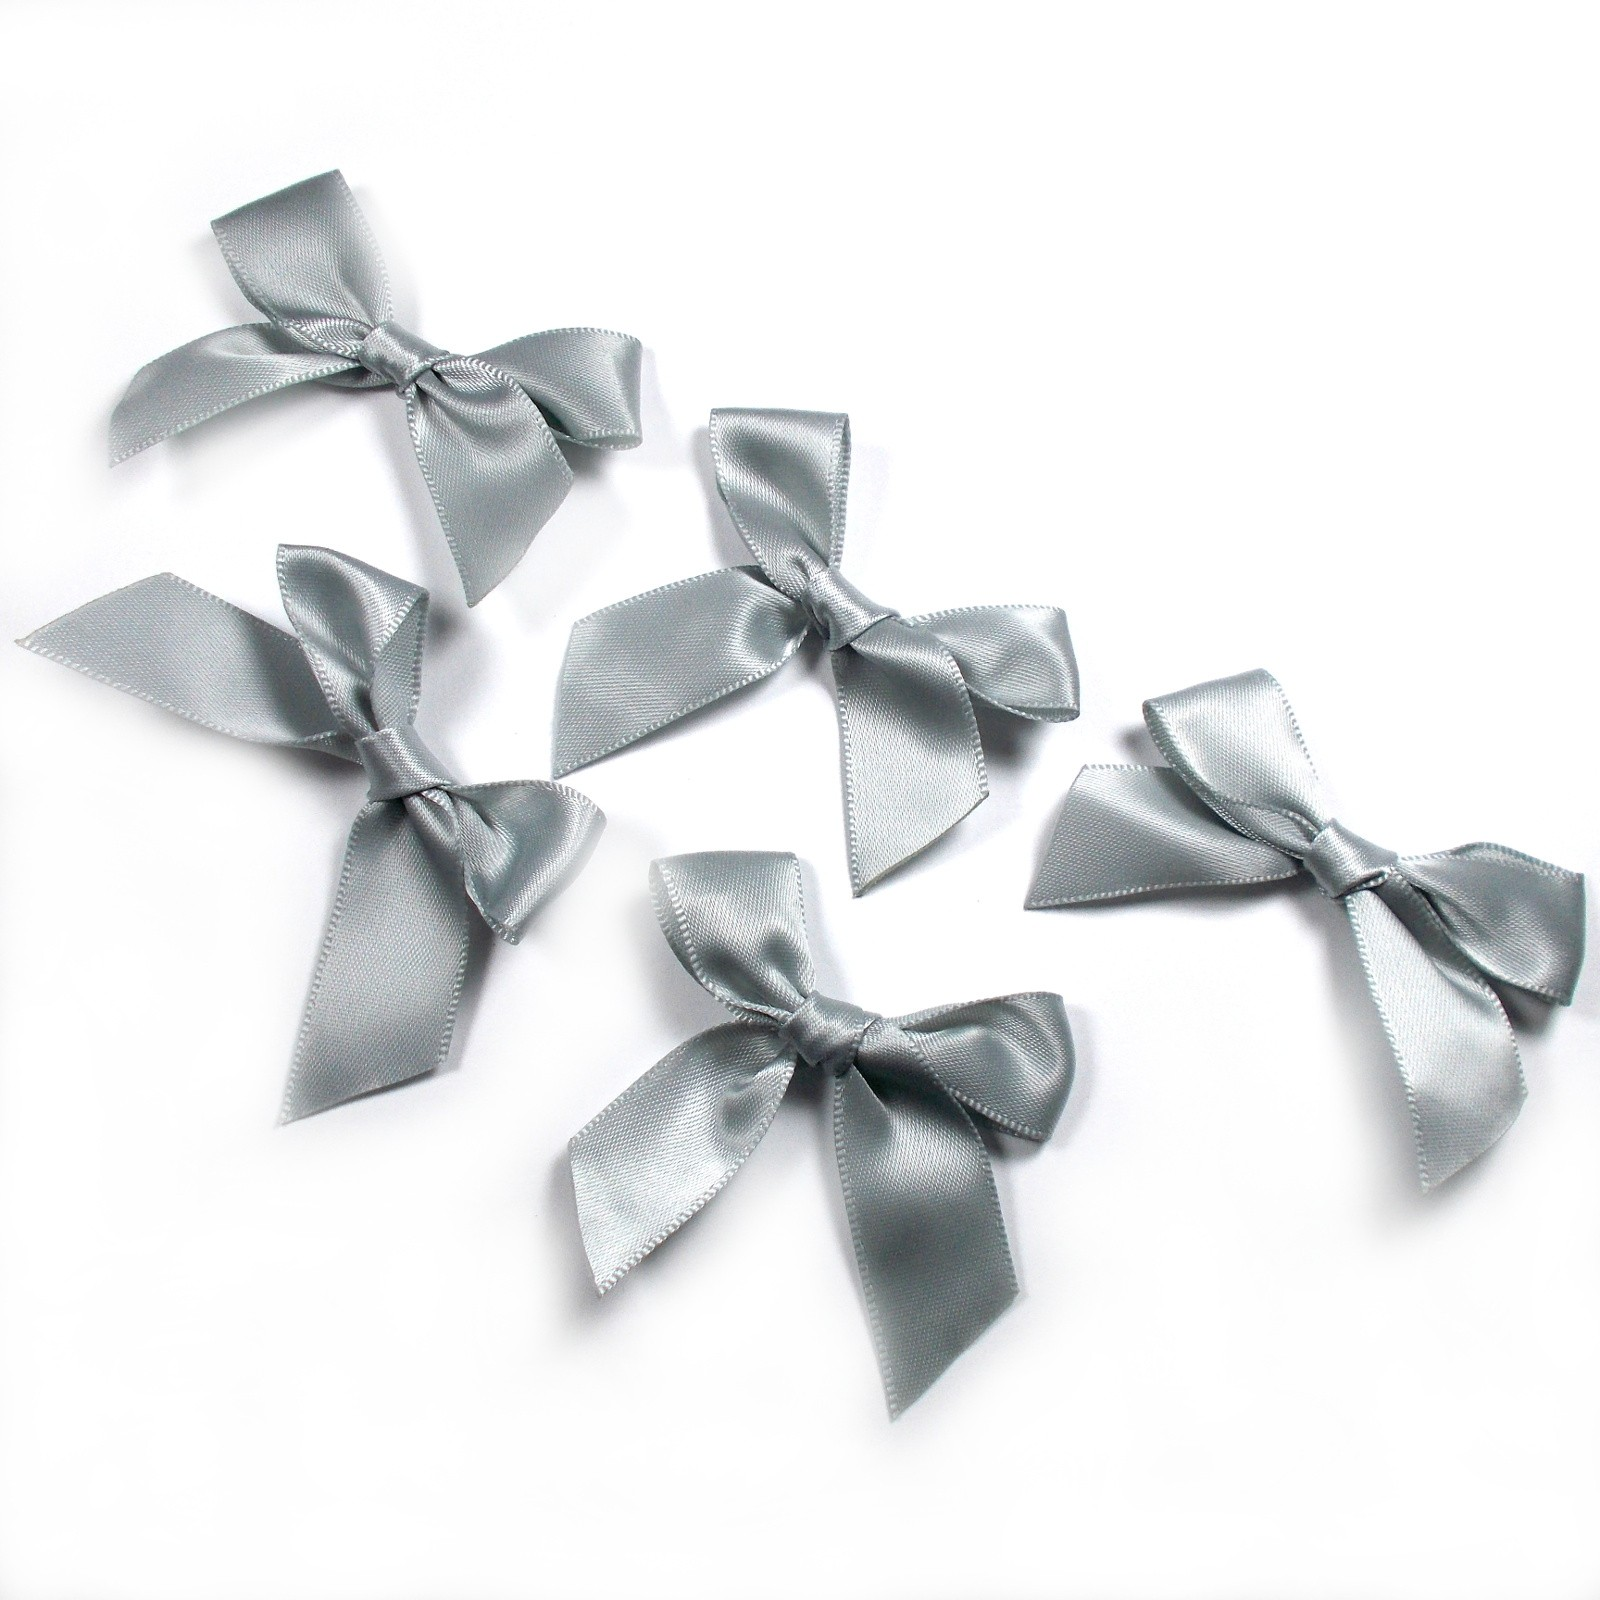 Satin Ribbon Bows approx 5.5cm wide Grey Pack of 5